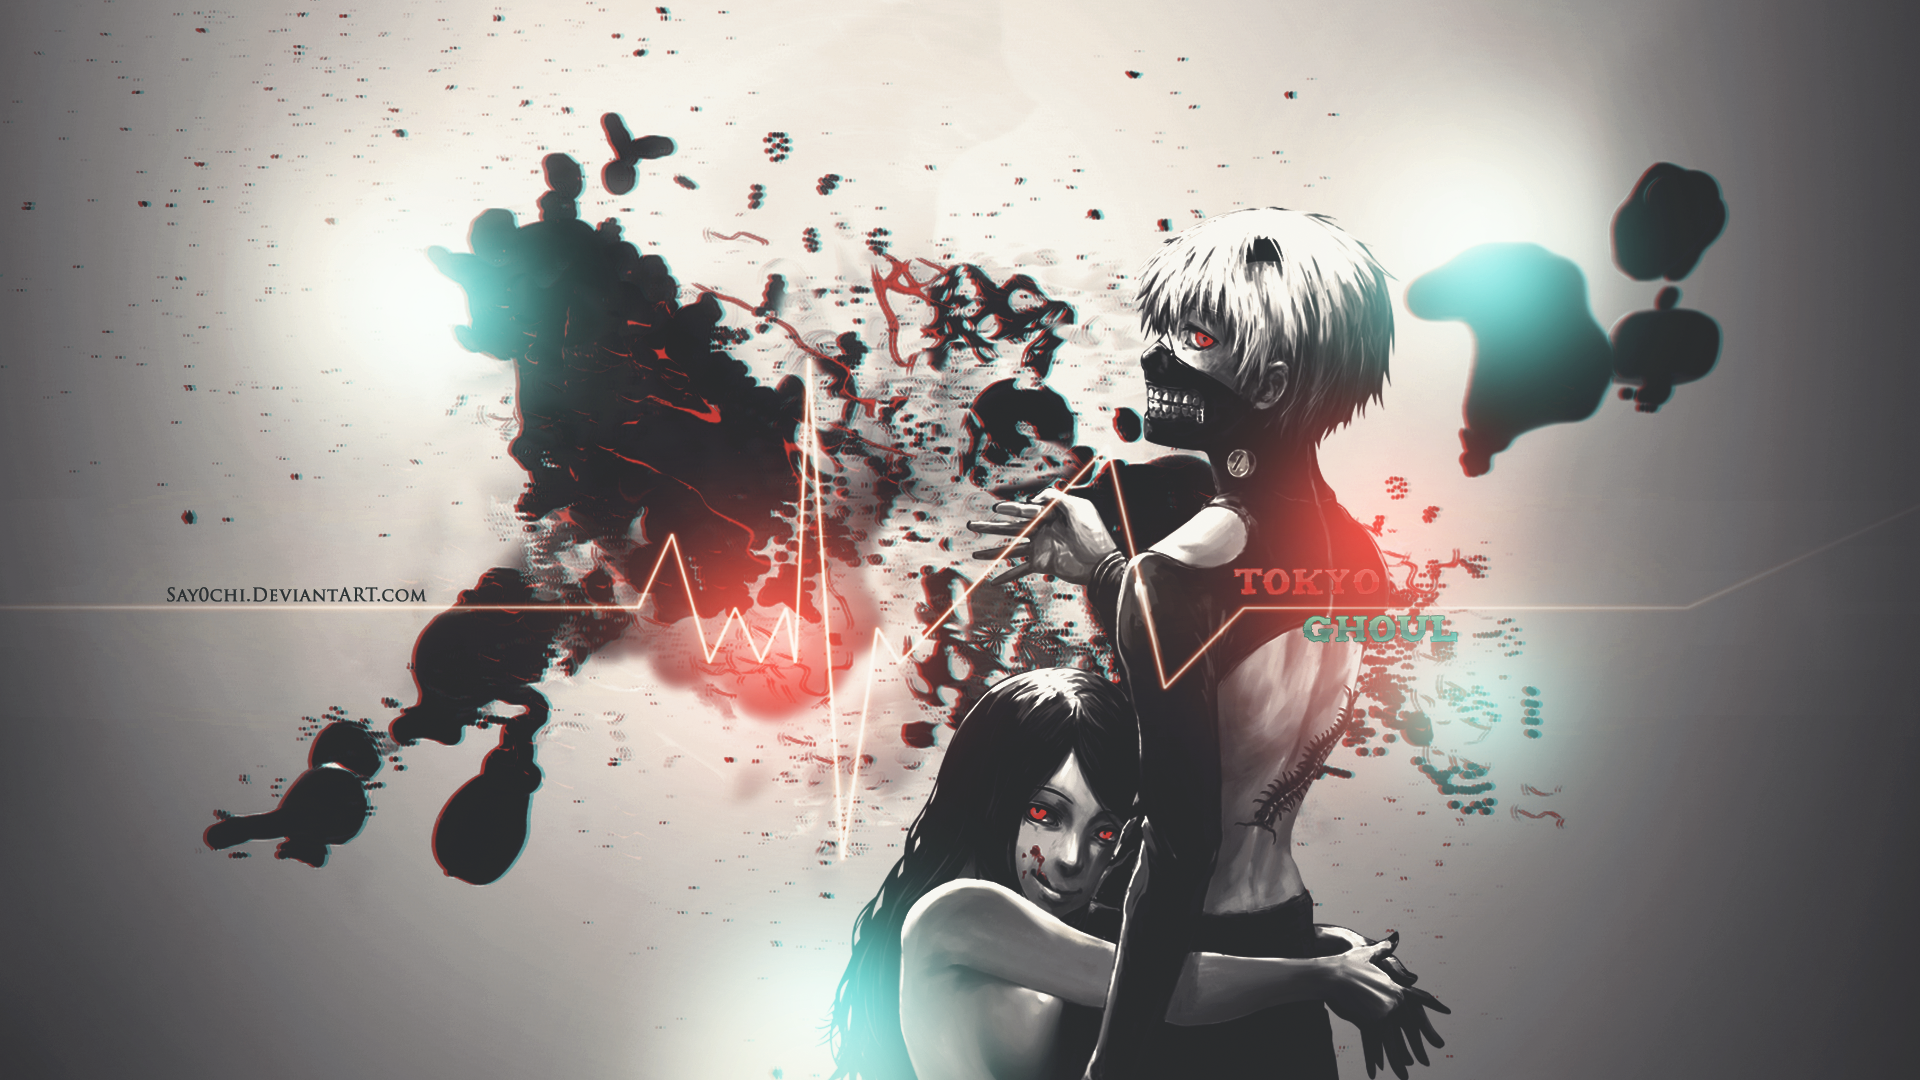 ghoul wallpaper 1920 x 1080 hd by say0chi customization wallpaper 1920x1080